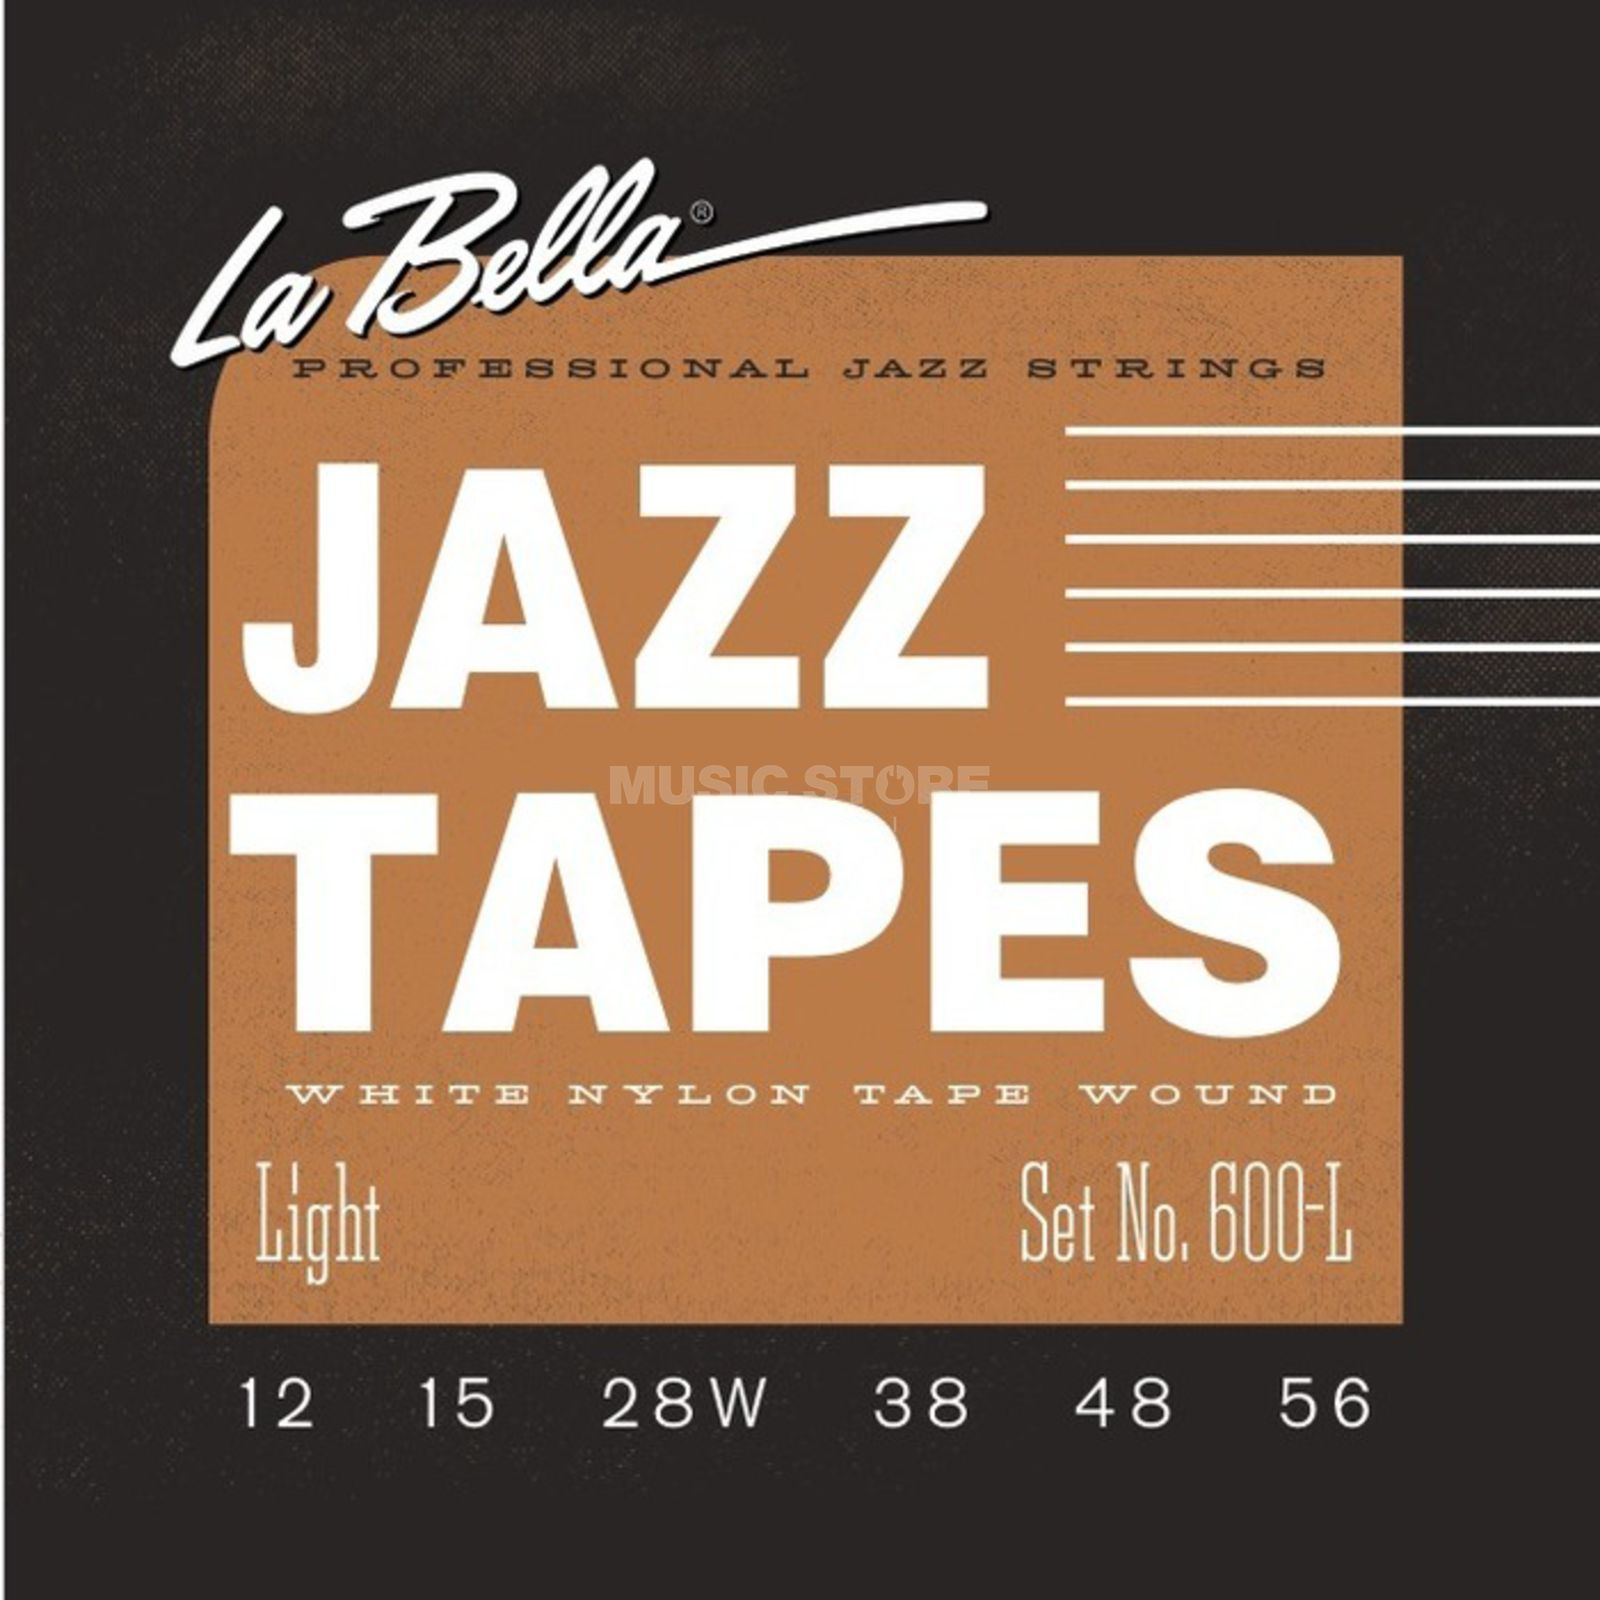 La Bella White Nylon Saiten 600-L 12-56 Jazz Tapes Produktbillede